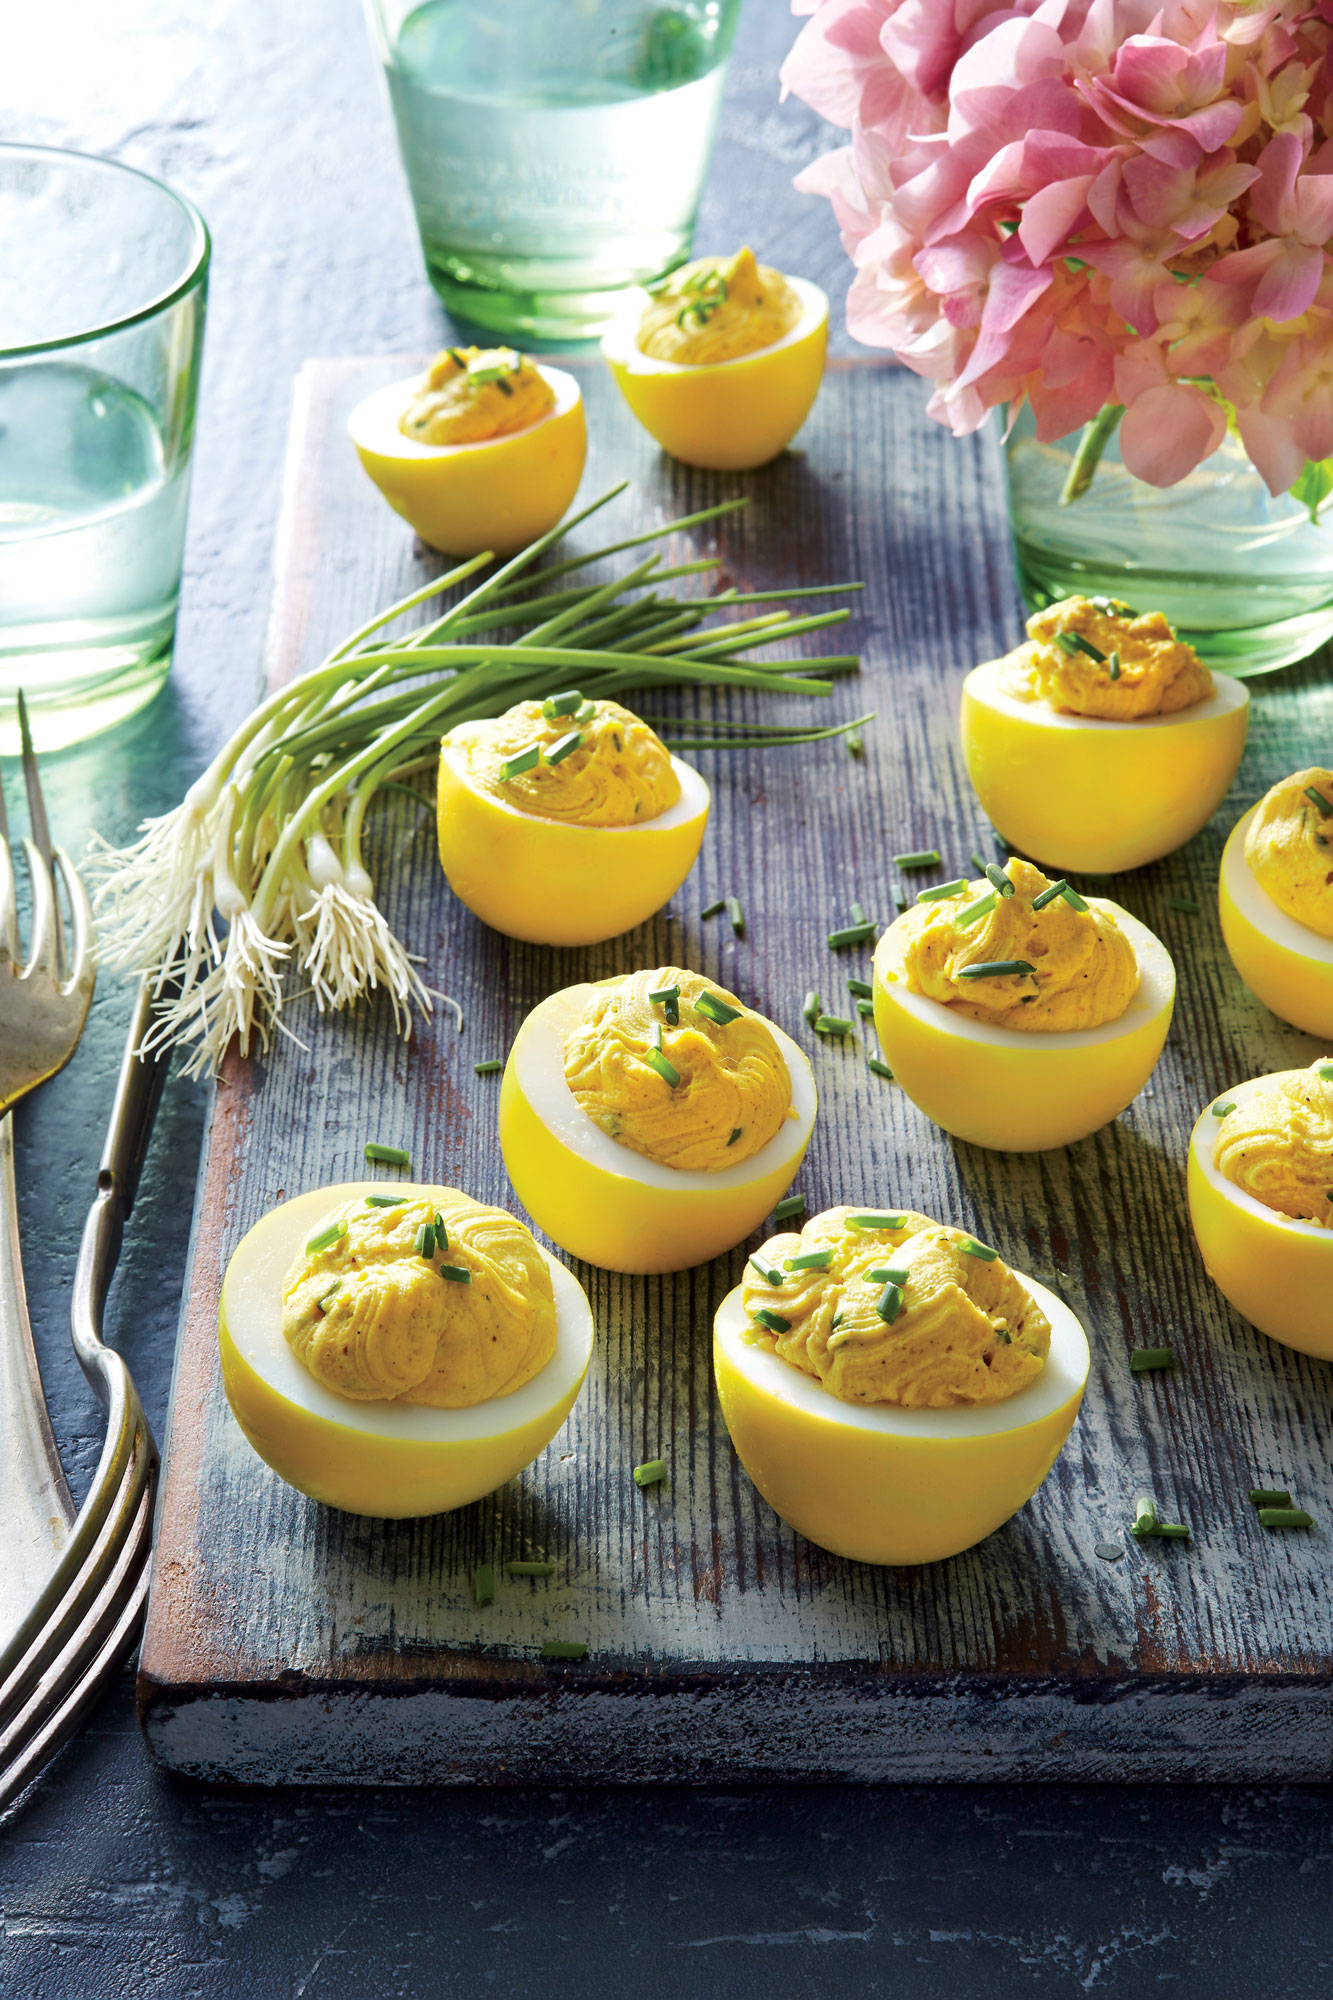 Turmeric-Pickled Deviled Eggs Recipe - Cooking Light